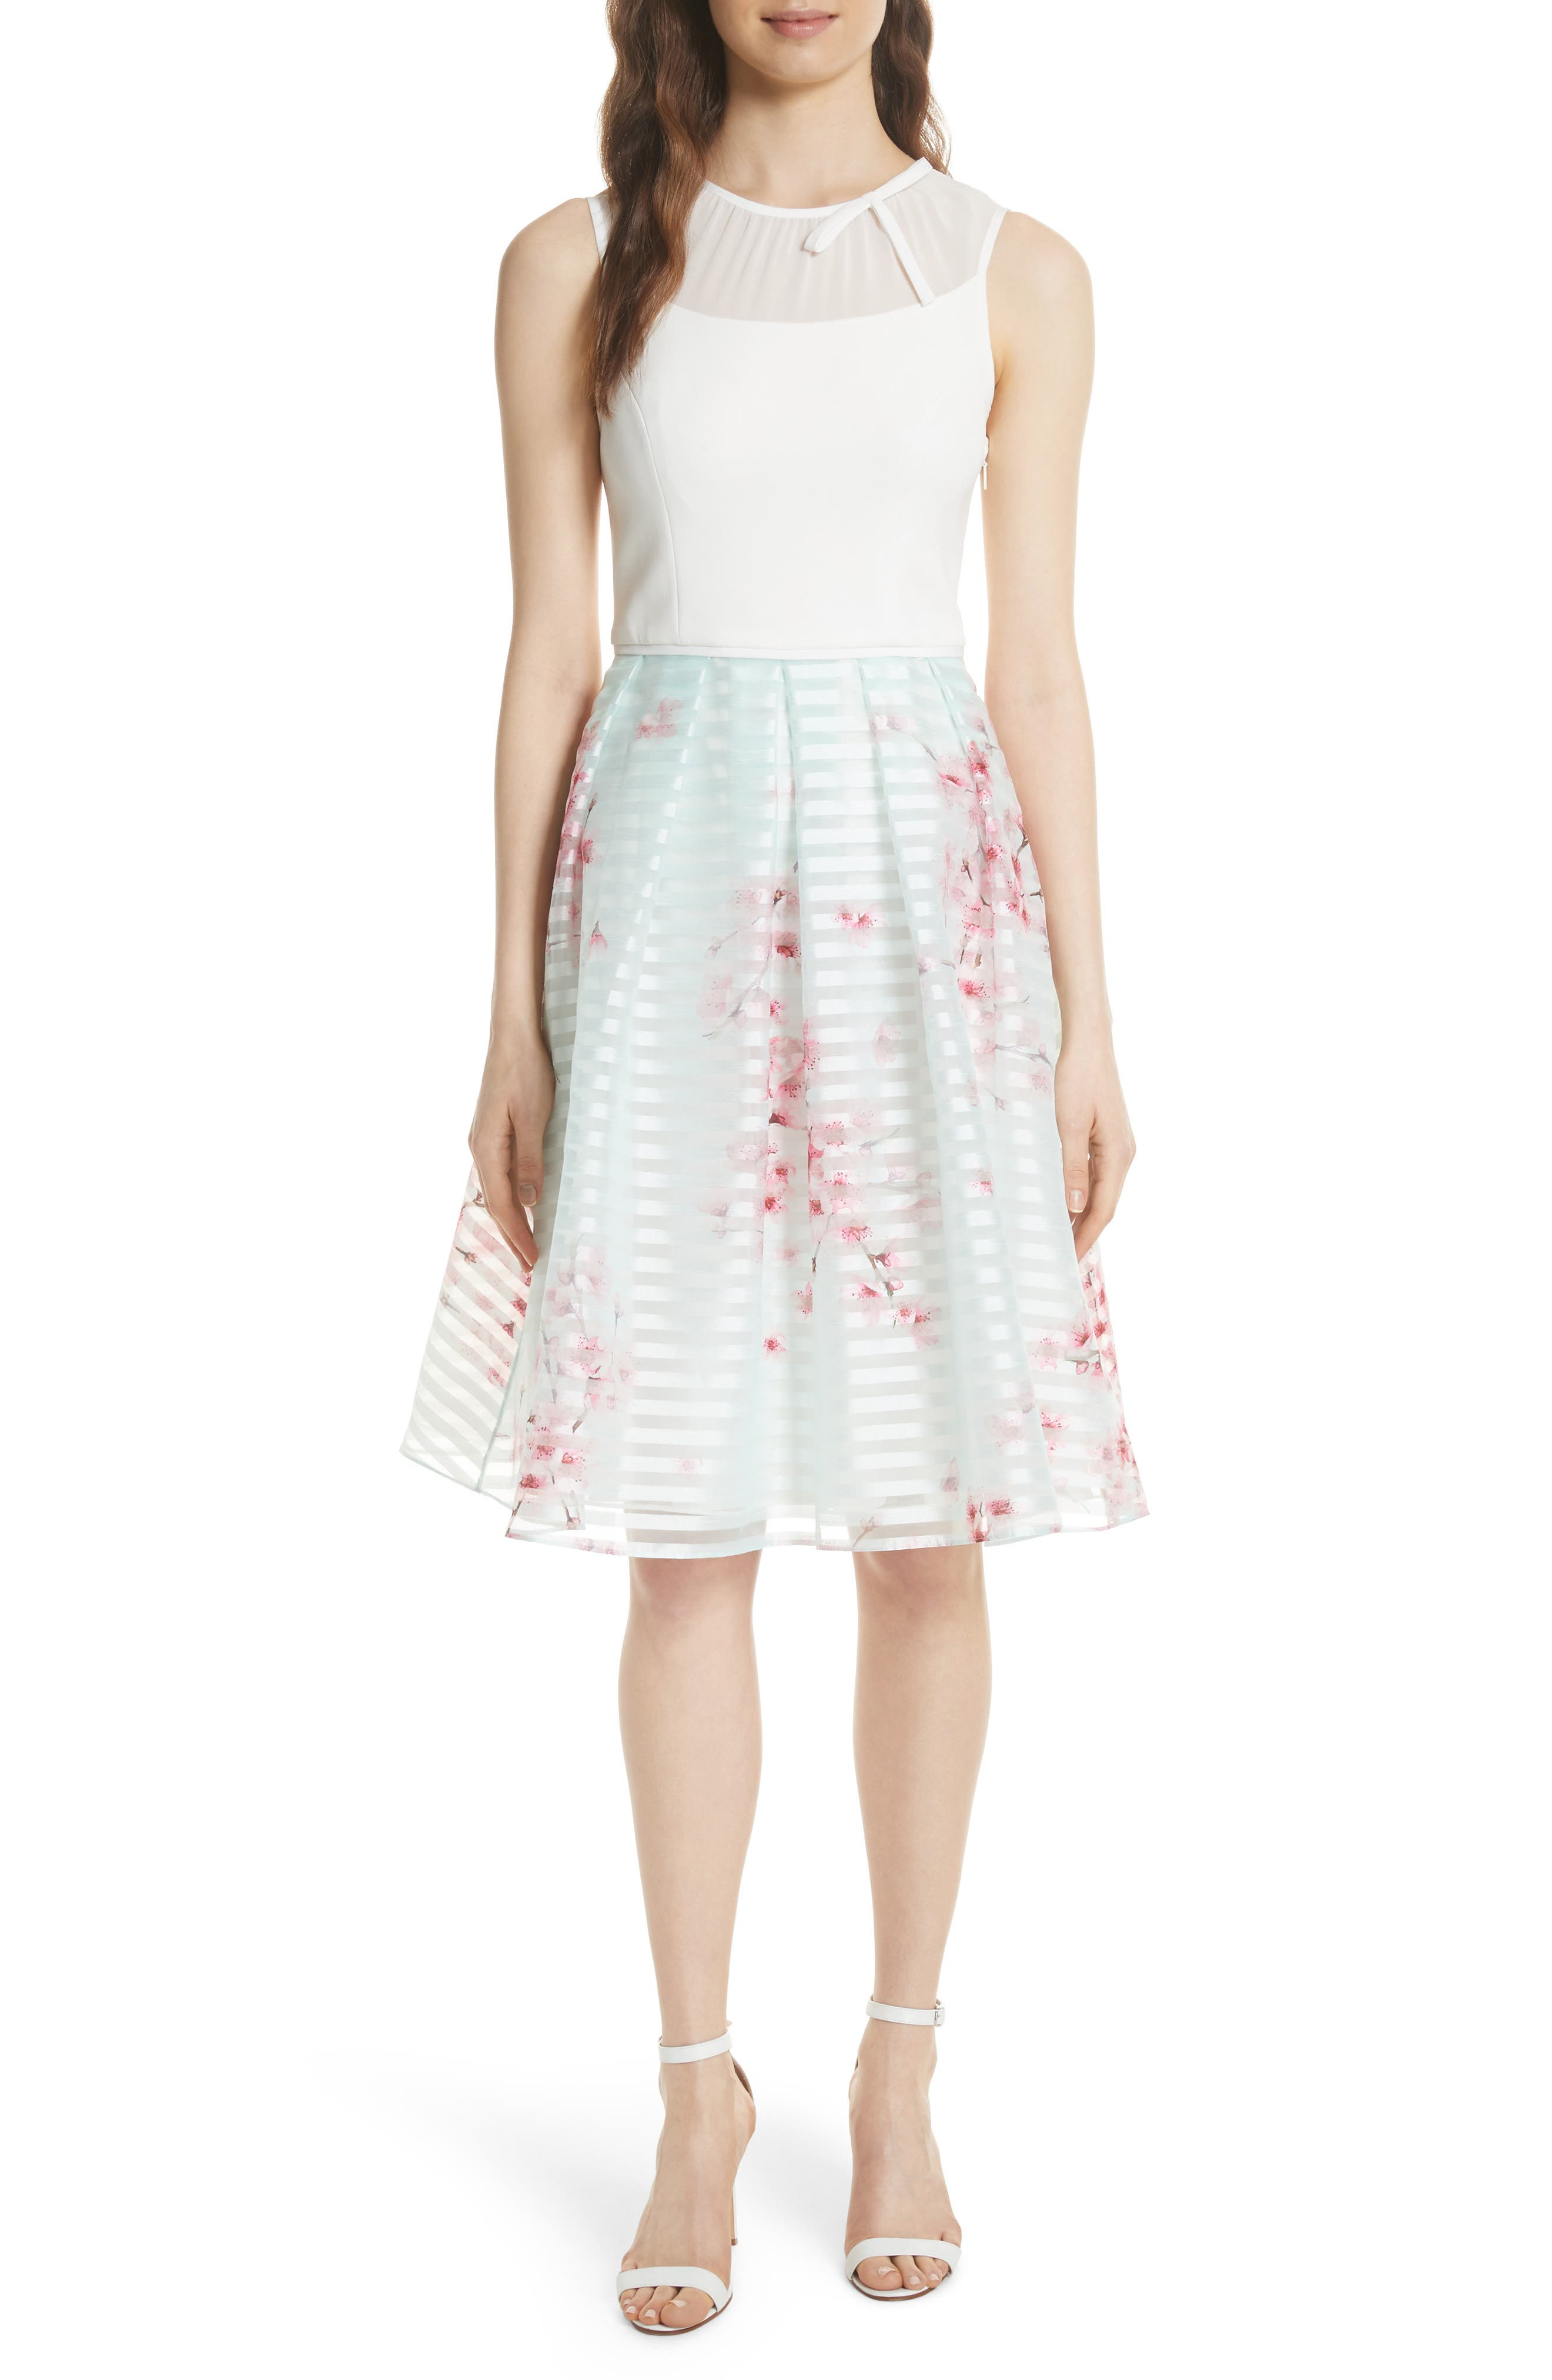 Alternate Image 1 Selected - Ted Baker London Soft Blossom Fit & Flare Dress